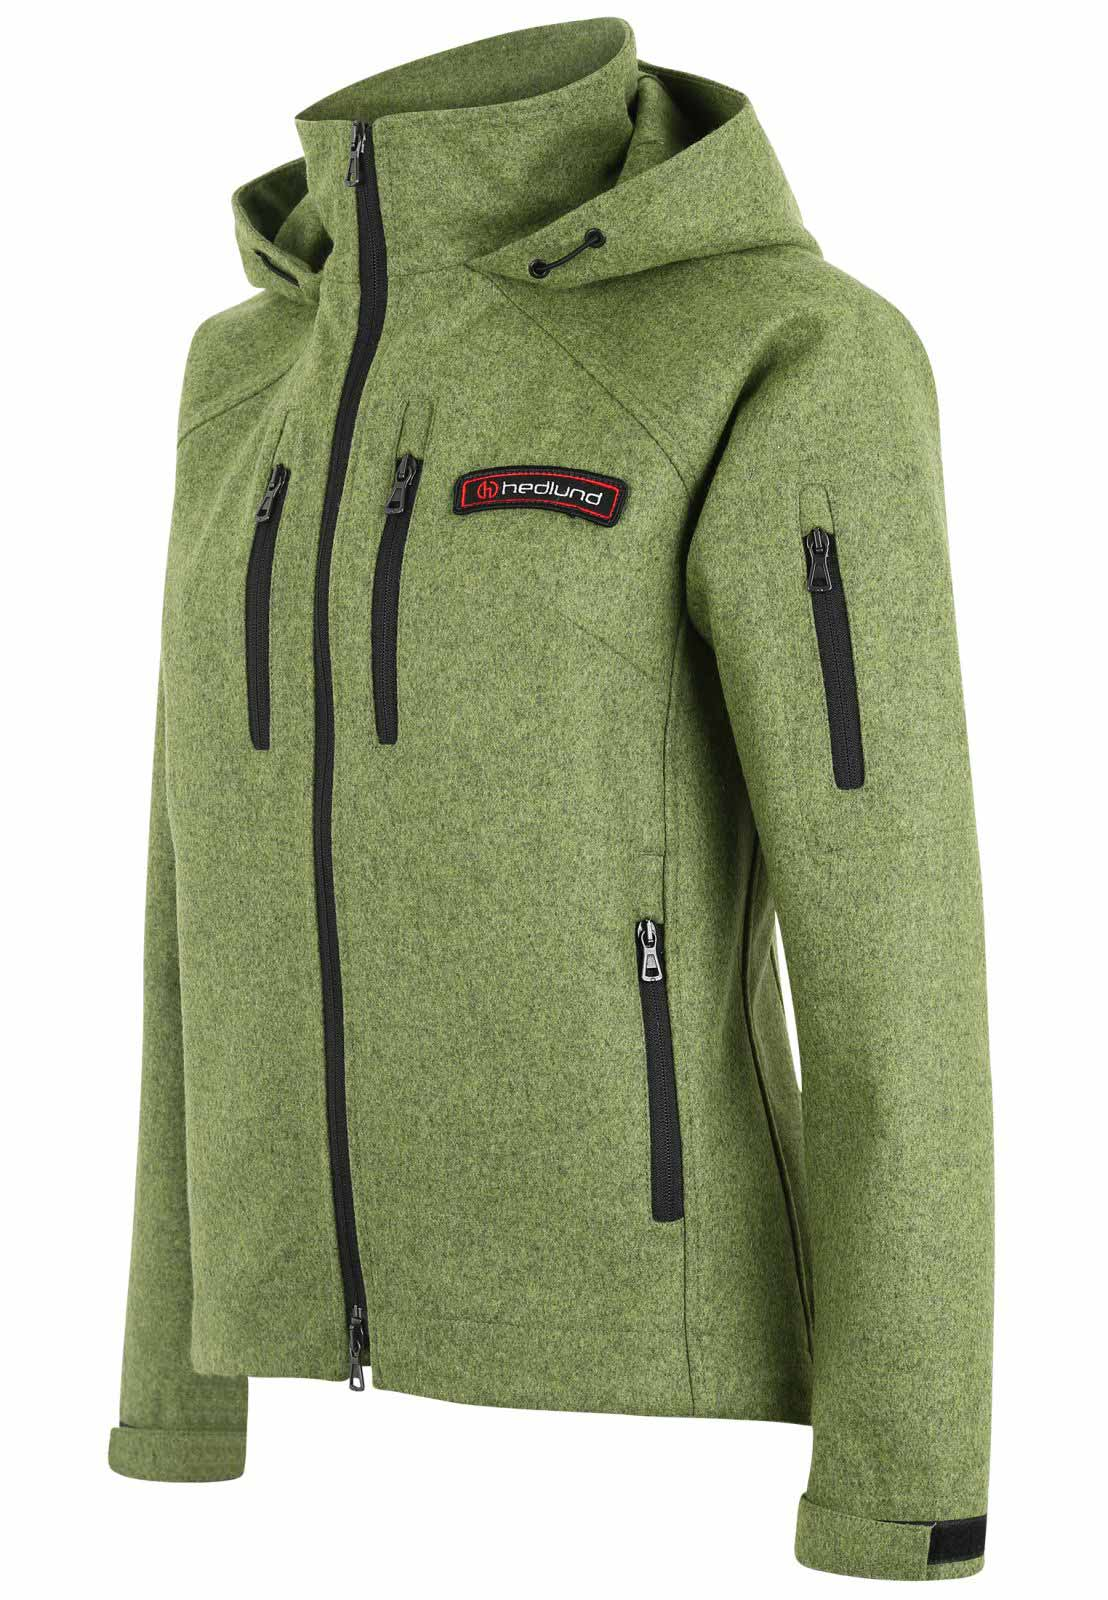 Damen Softshelljacke - Outdoorjacke aus Wolle - Leka mid green